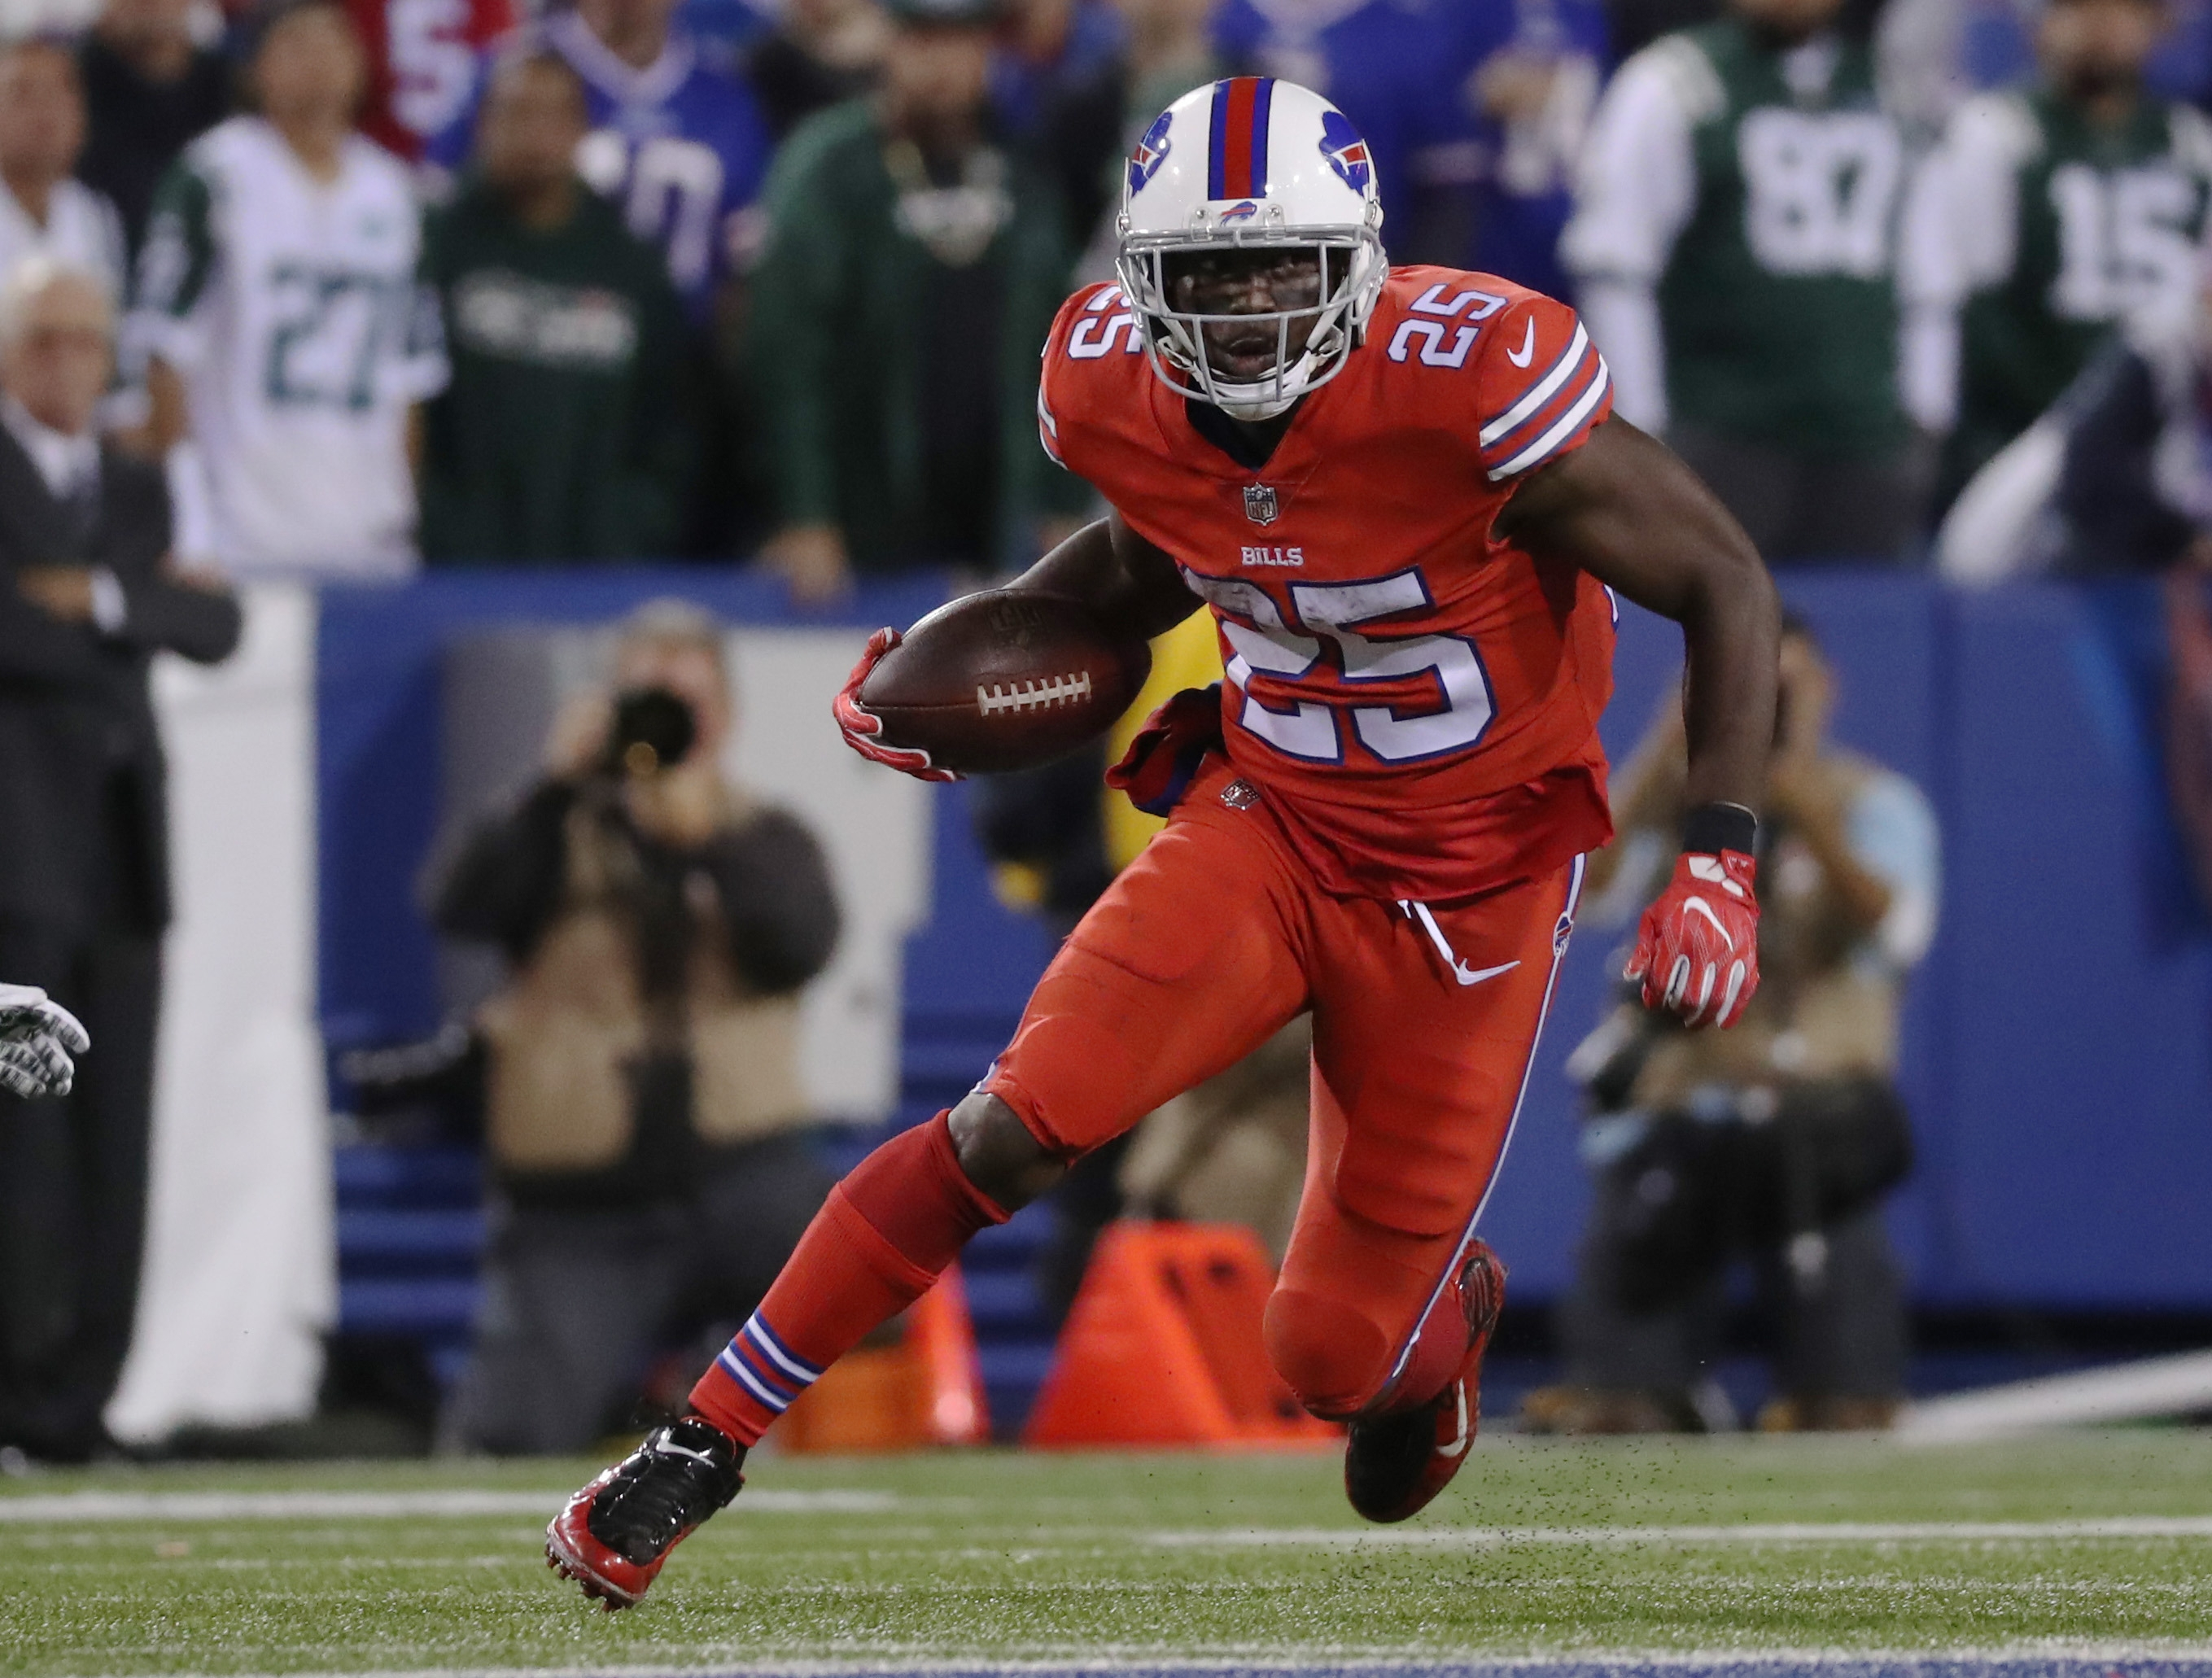 Buffalo Bills running back LeSean McCoy runs the ball against the New York Jets at New Era Field in Orchard Park on Sept. 15, 2016.  (James P. McCoy/ Buffalo News)